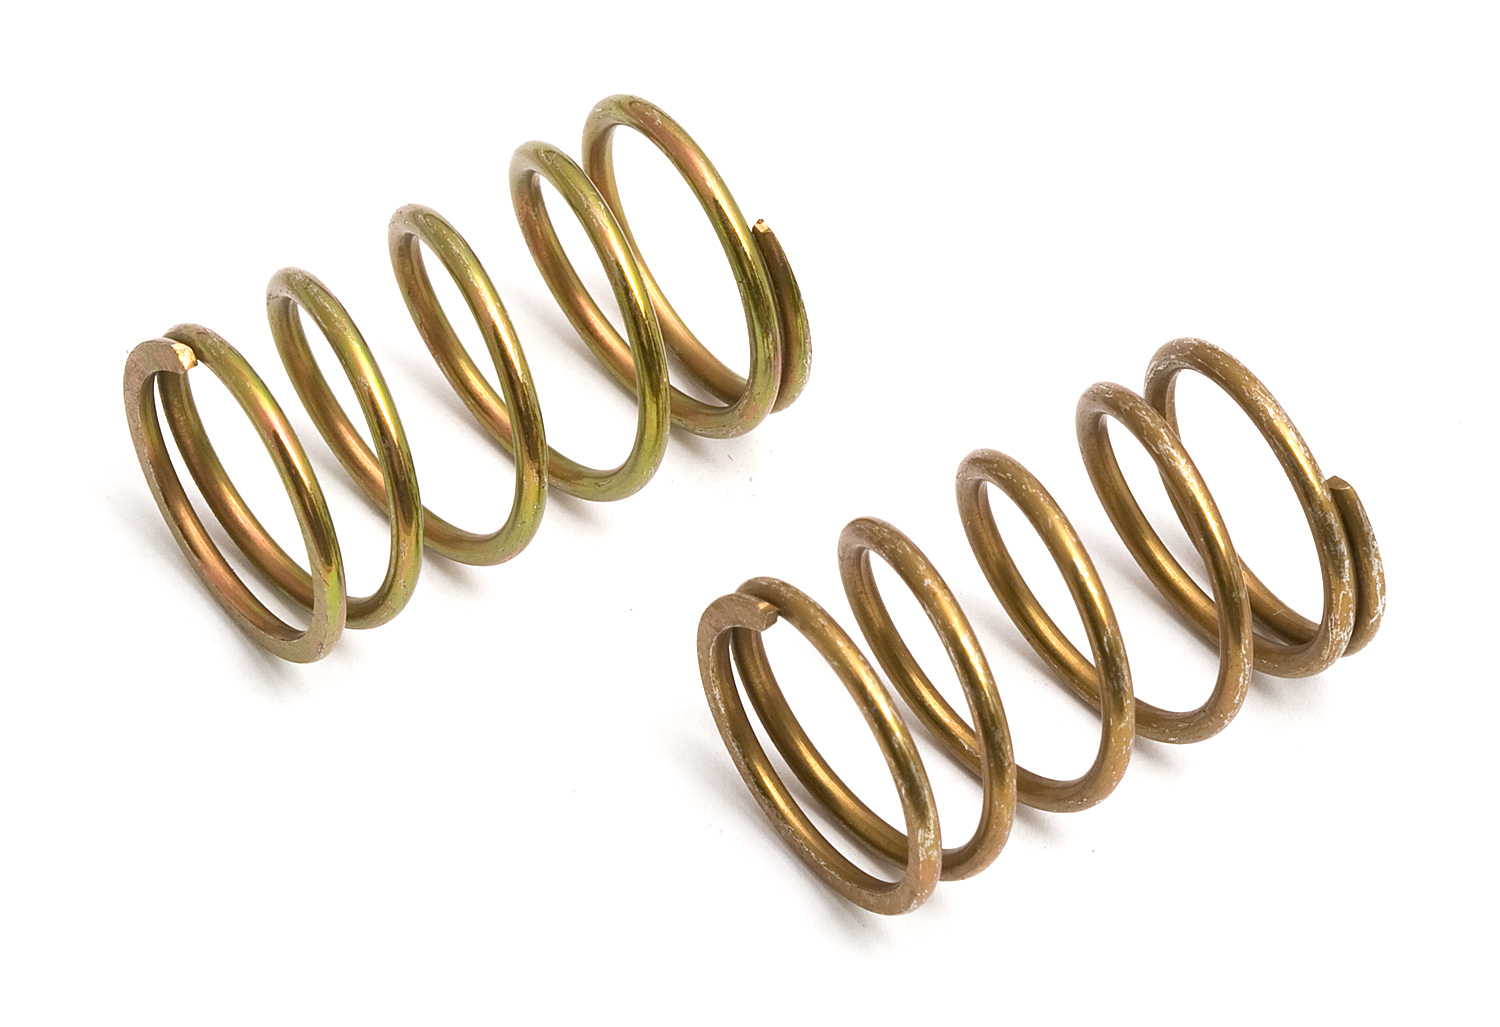 Roche Front Spring Medium Gold 2pcs